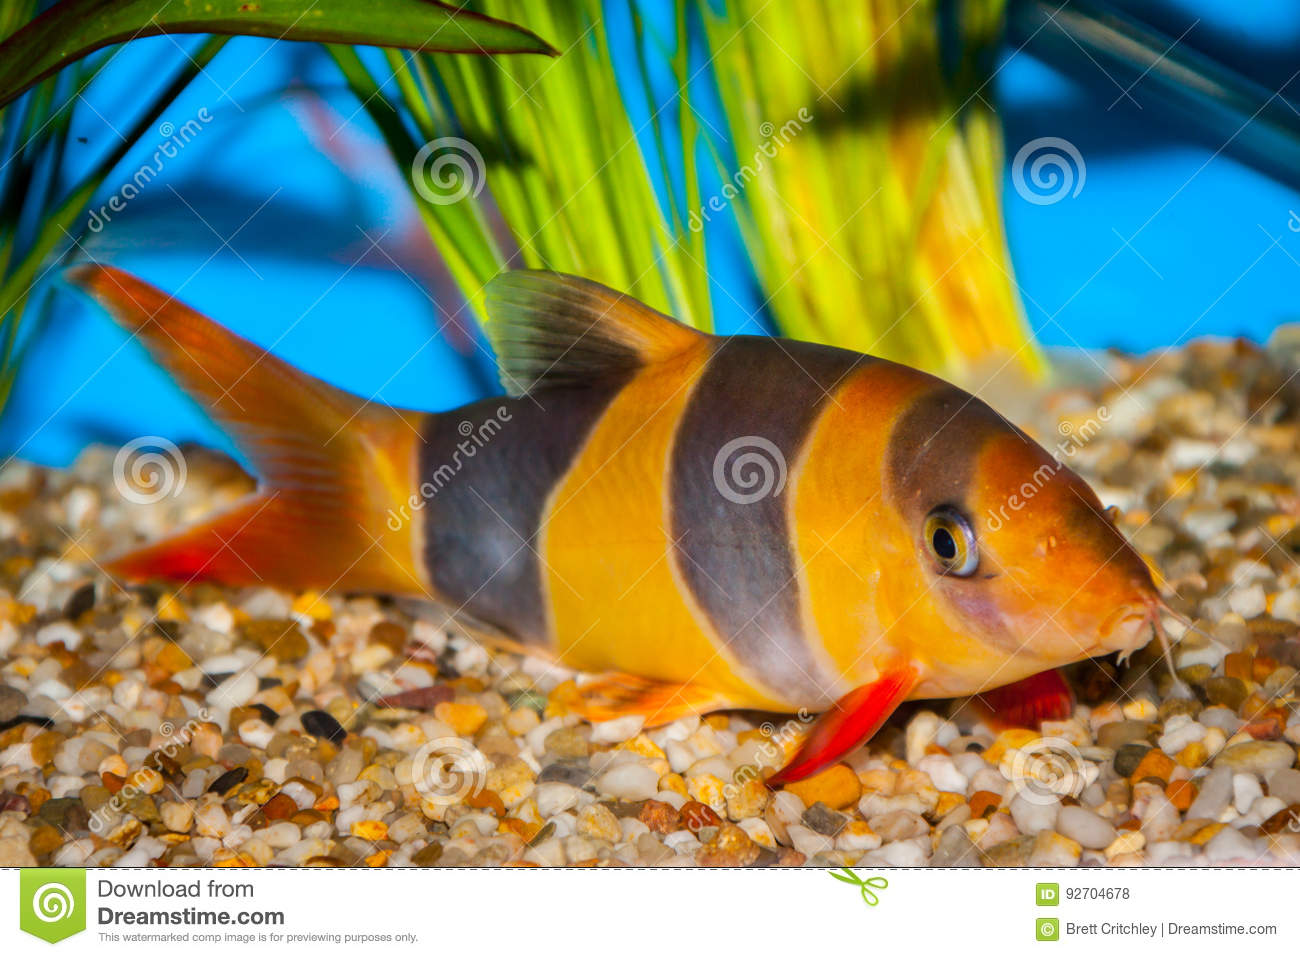 Tropical Clown Loach Fish Stock Photo Image Of Colorful 92704678